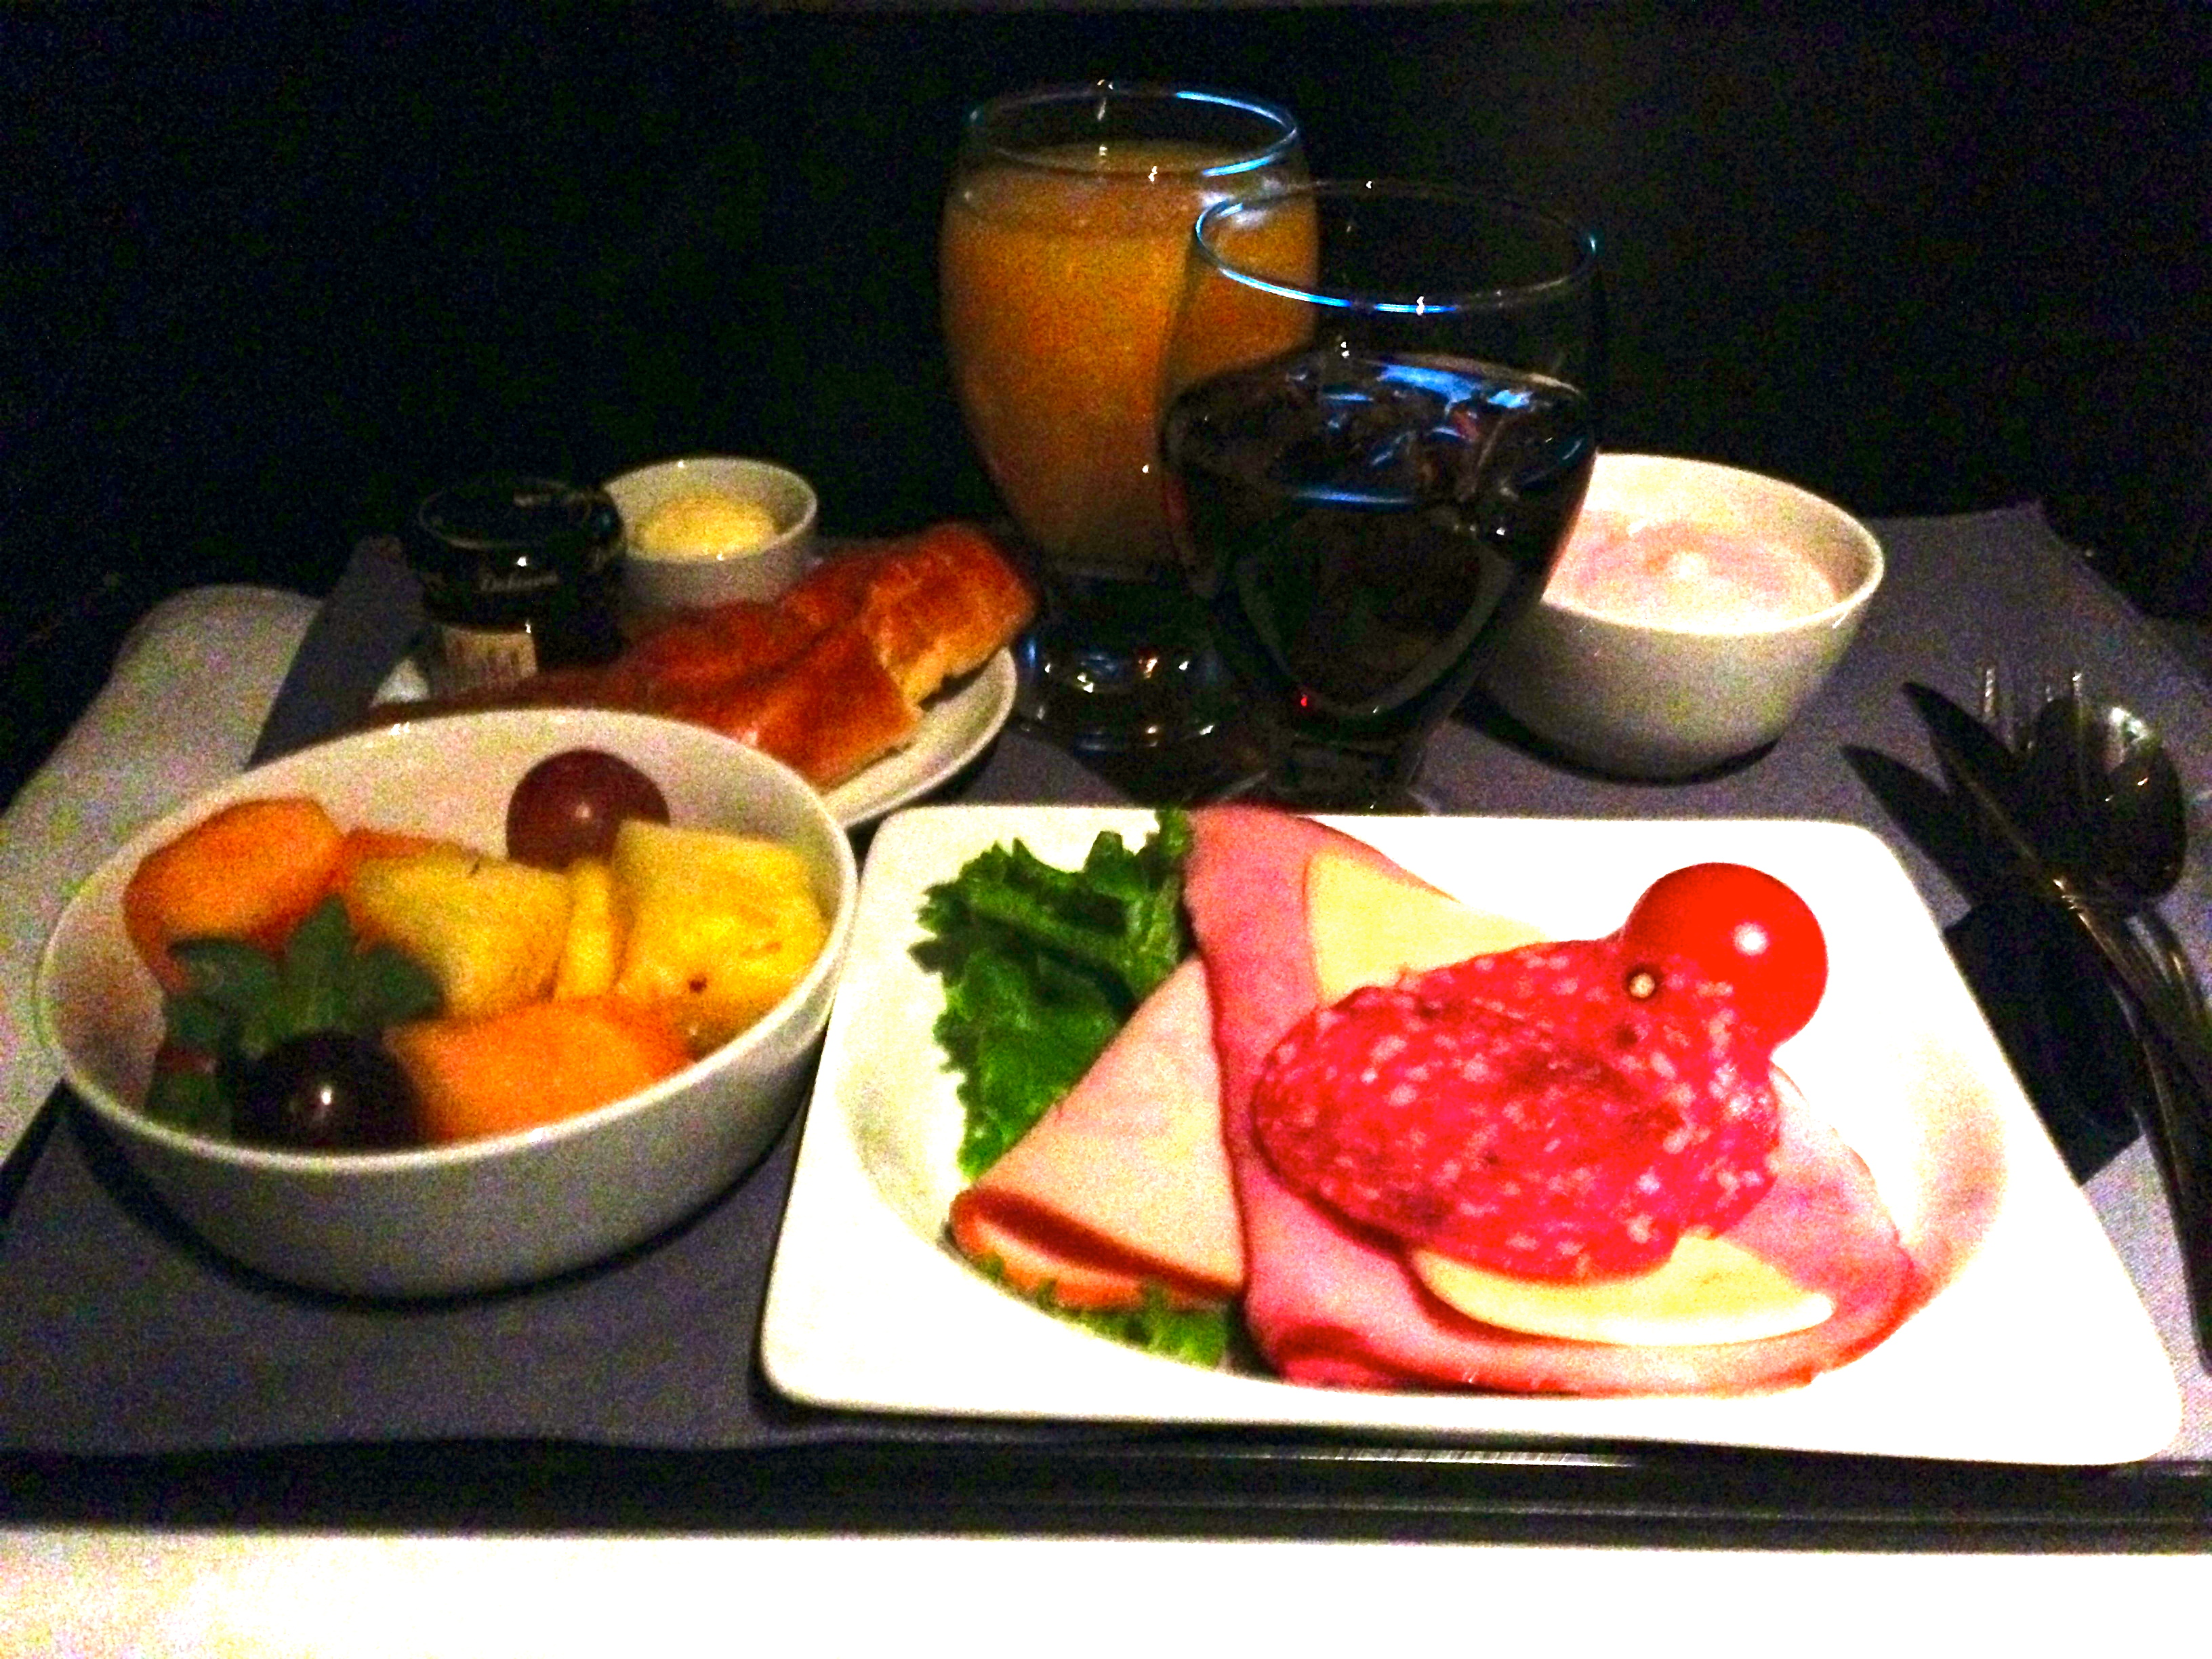 United Airlines 767-200 Business Class Pre-Arrival Meal BusinessFirst Chicago to Amsterdam